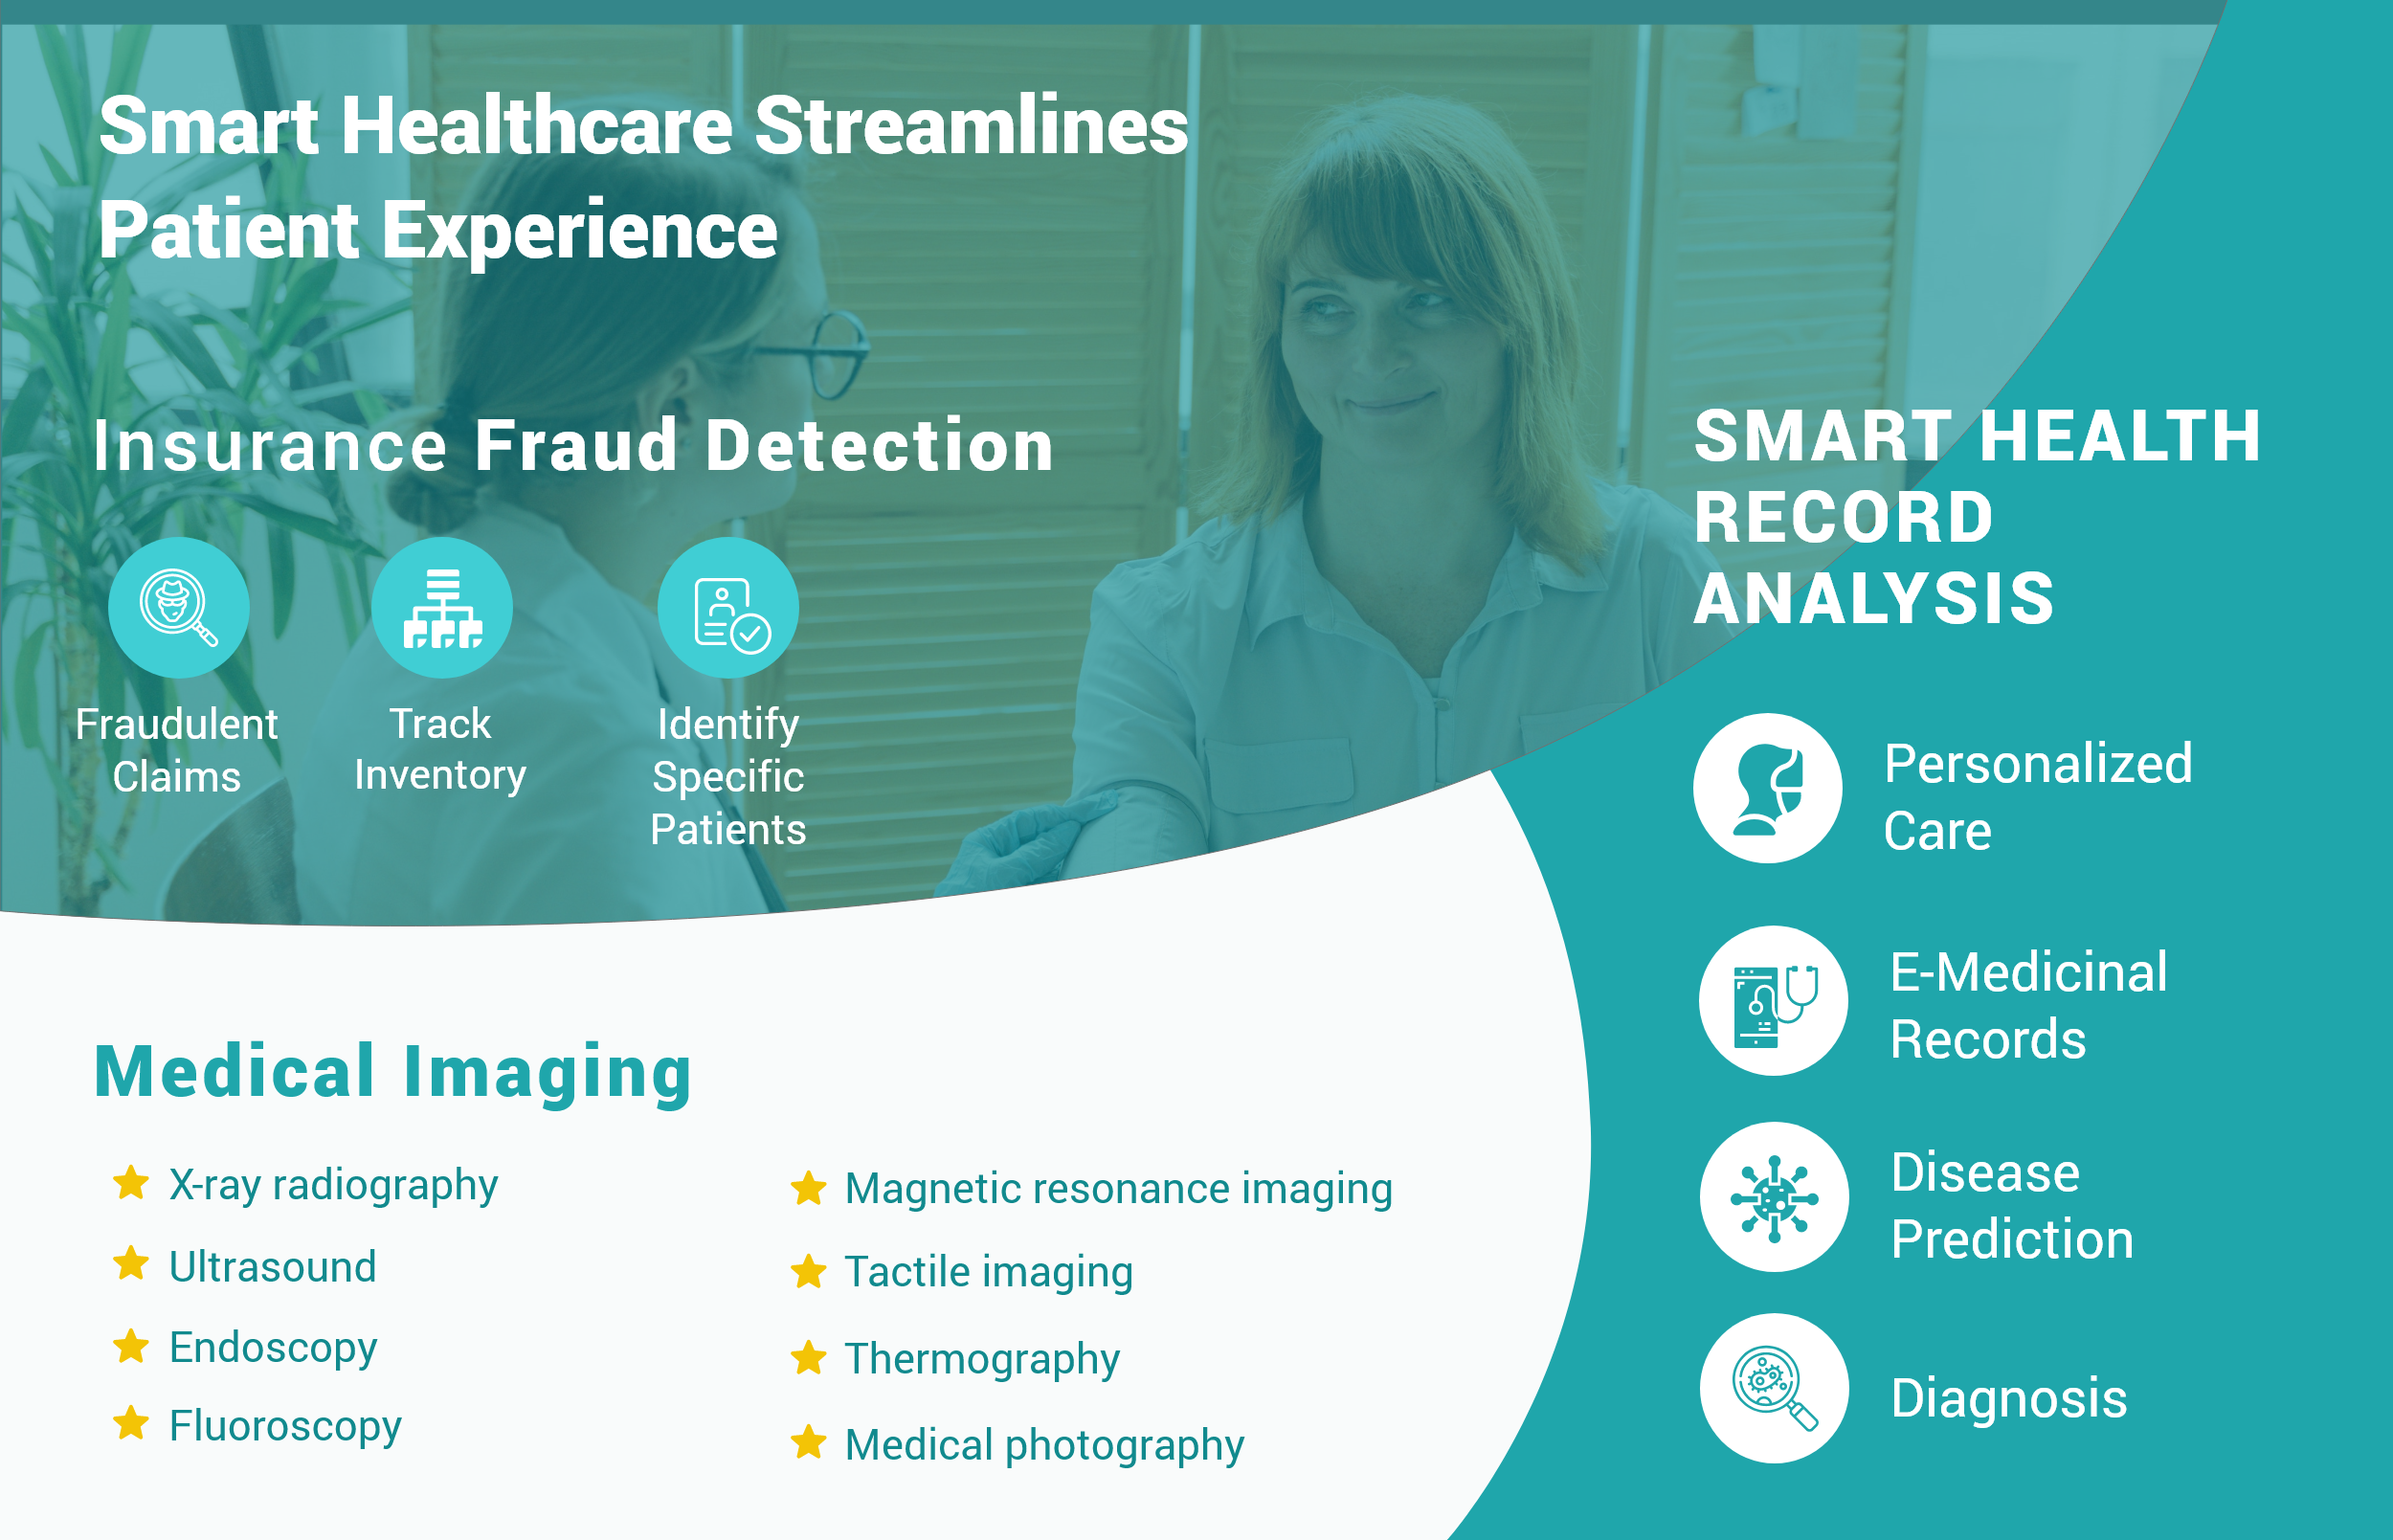 Smart Healthcare Streamlines Patient Experience - Part 2